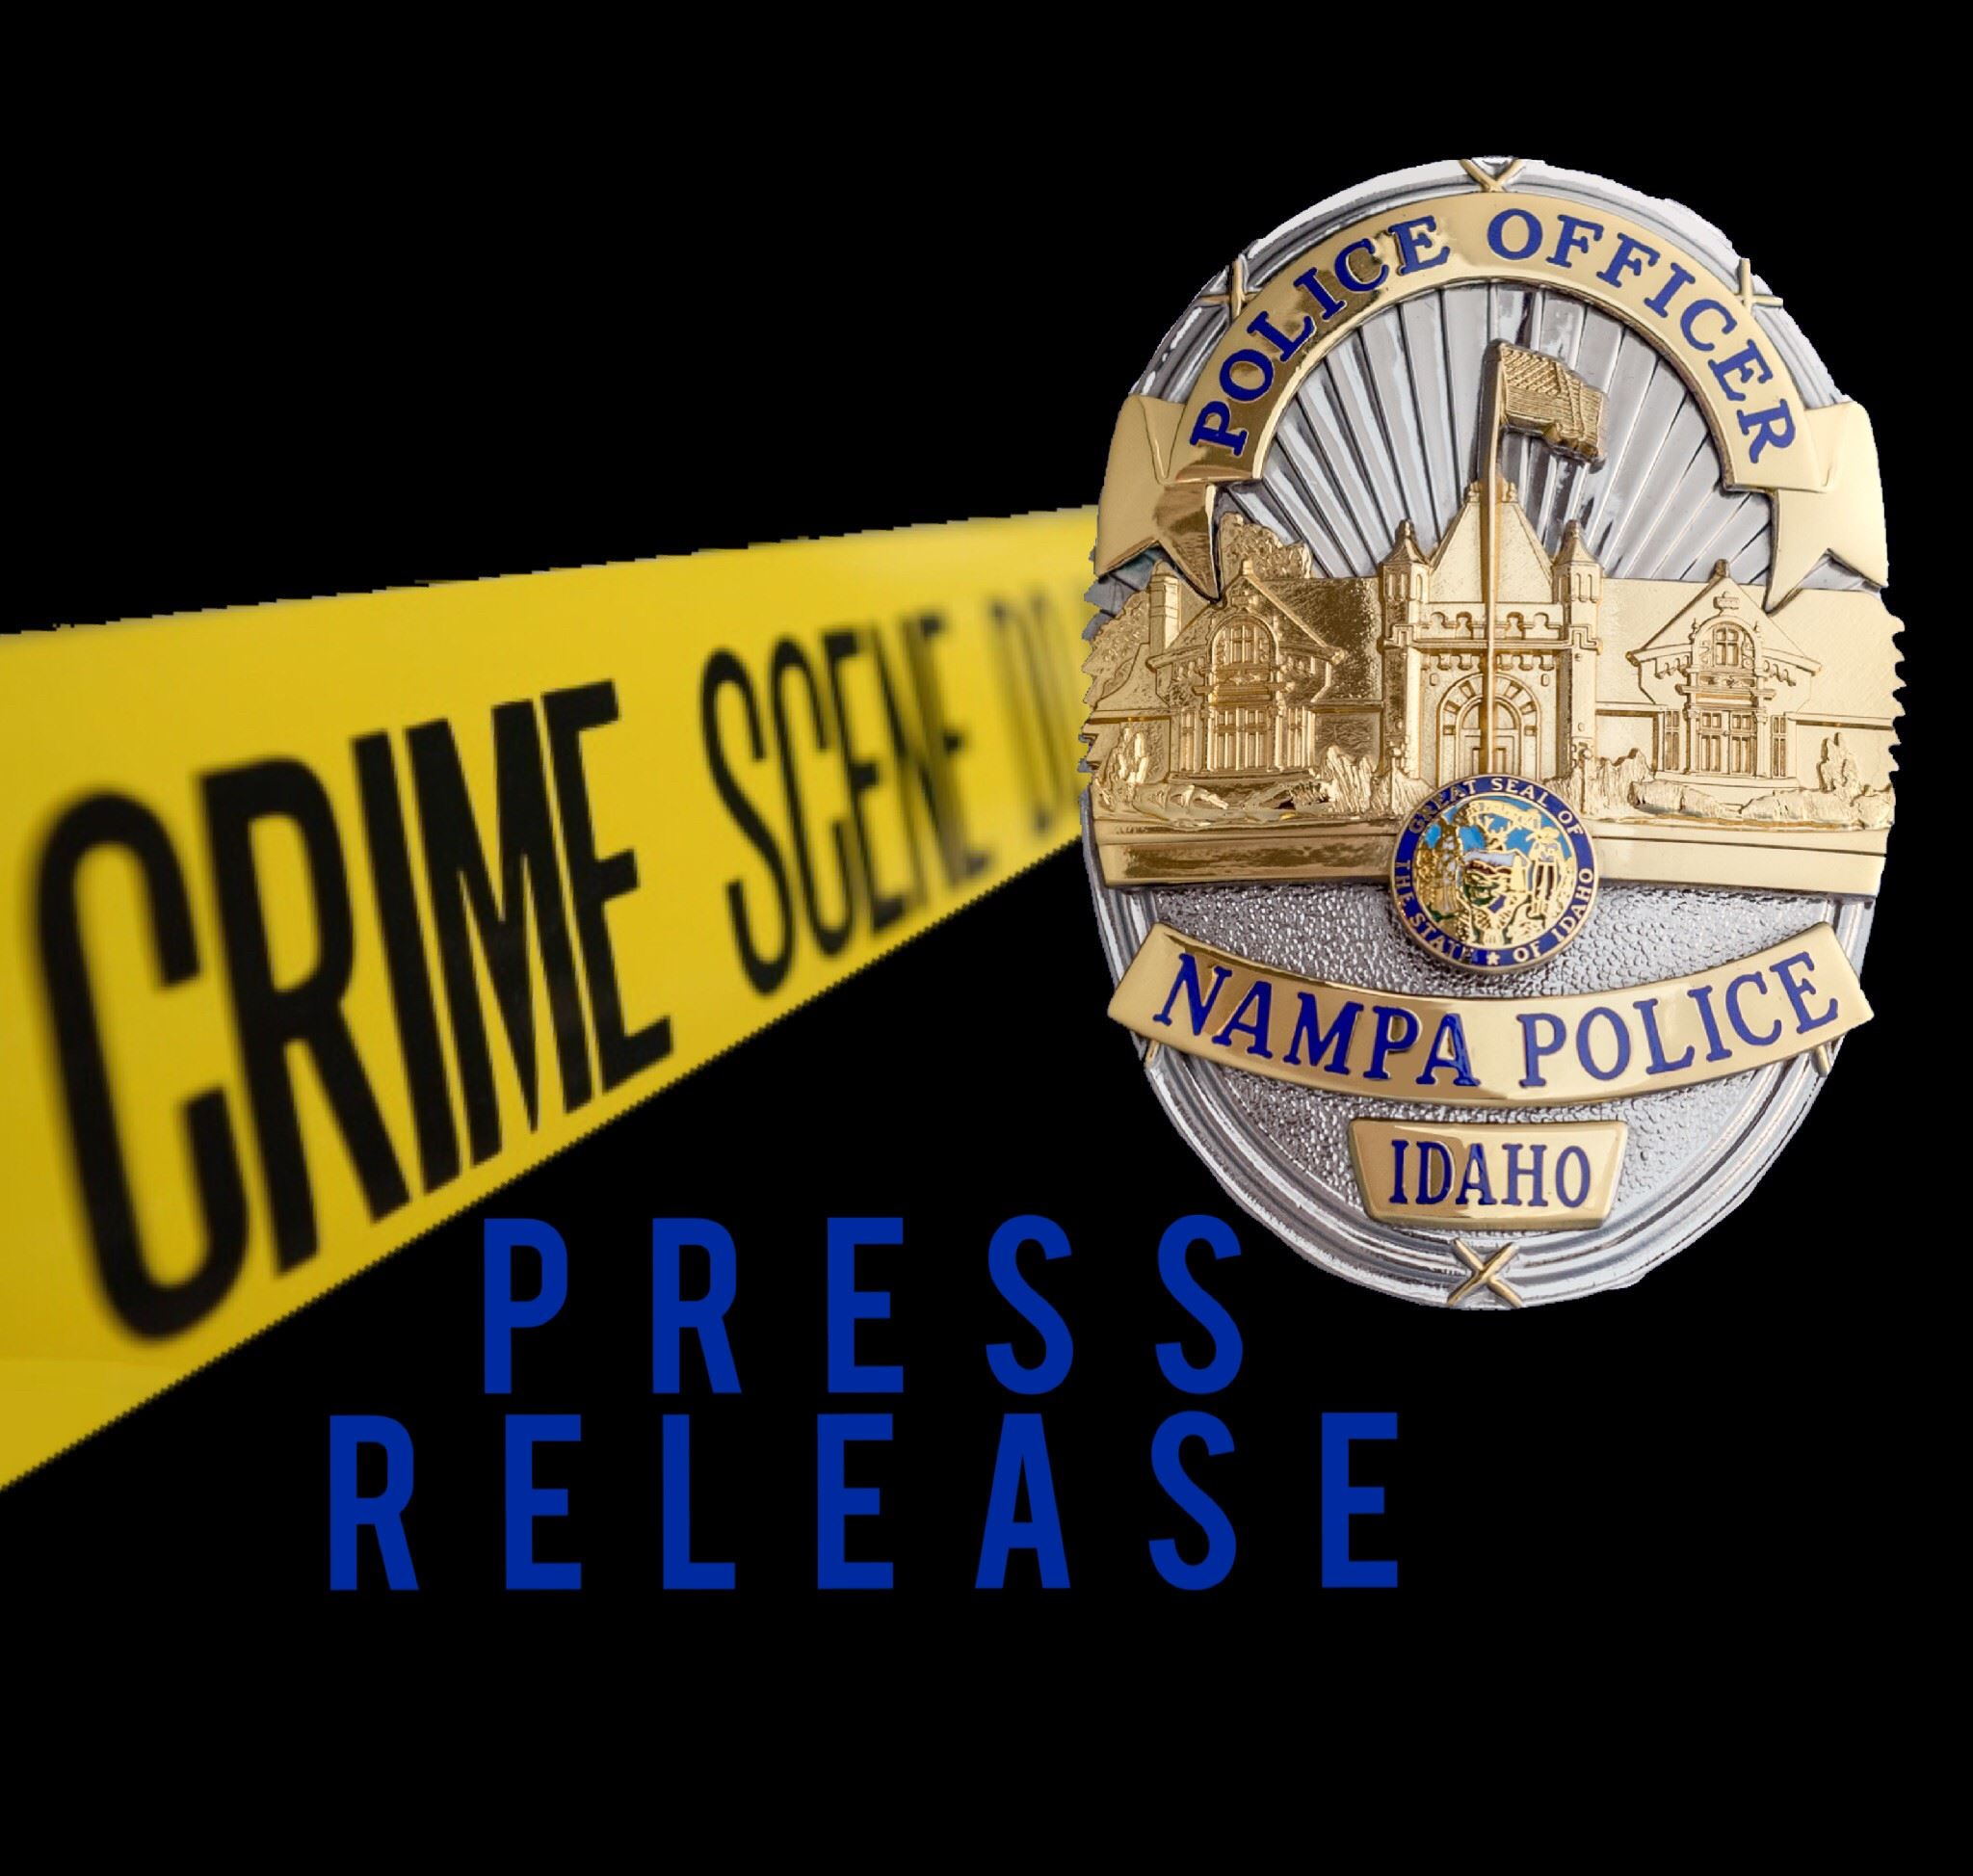 Nampa Police press release logo with badge and crime scene tape